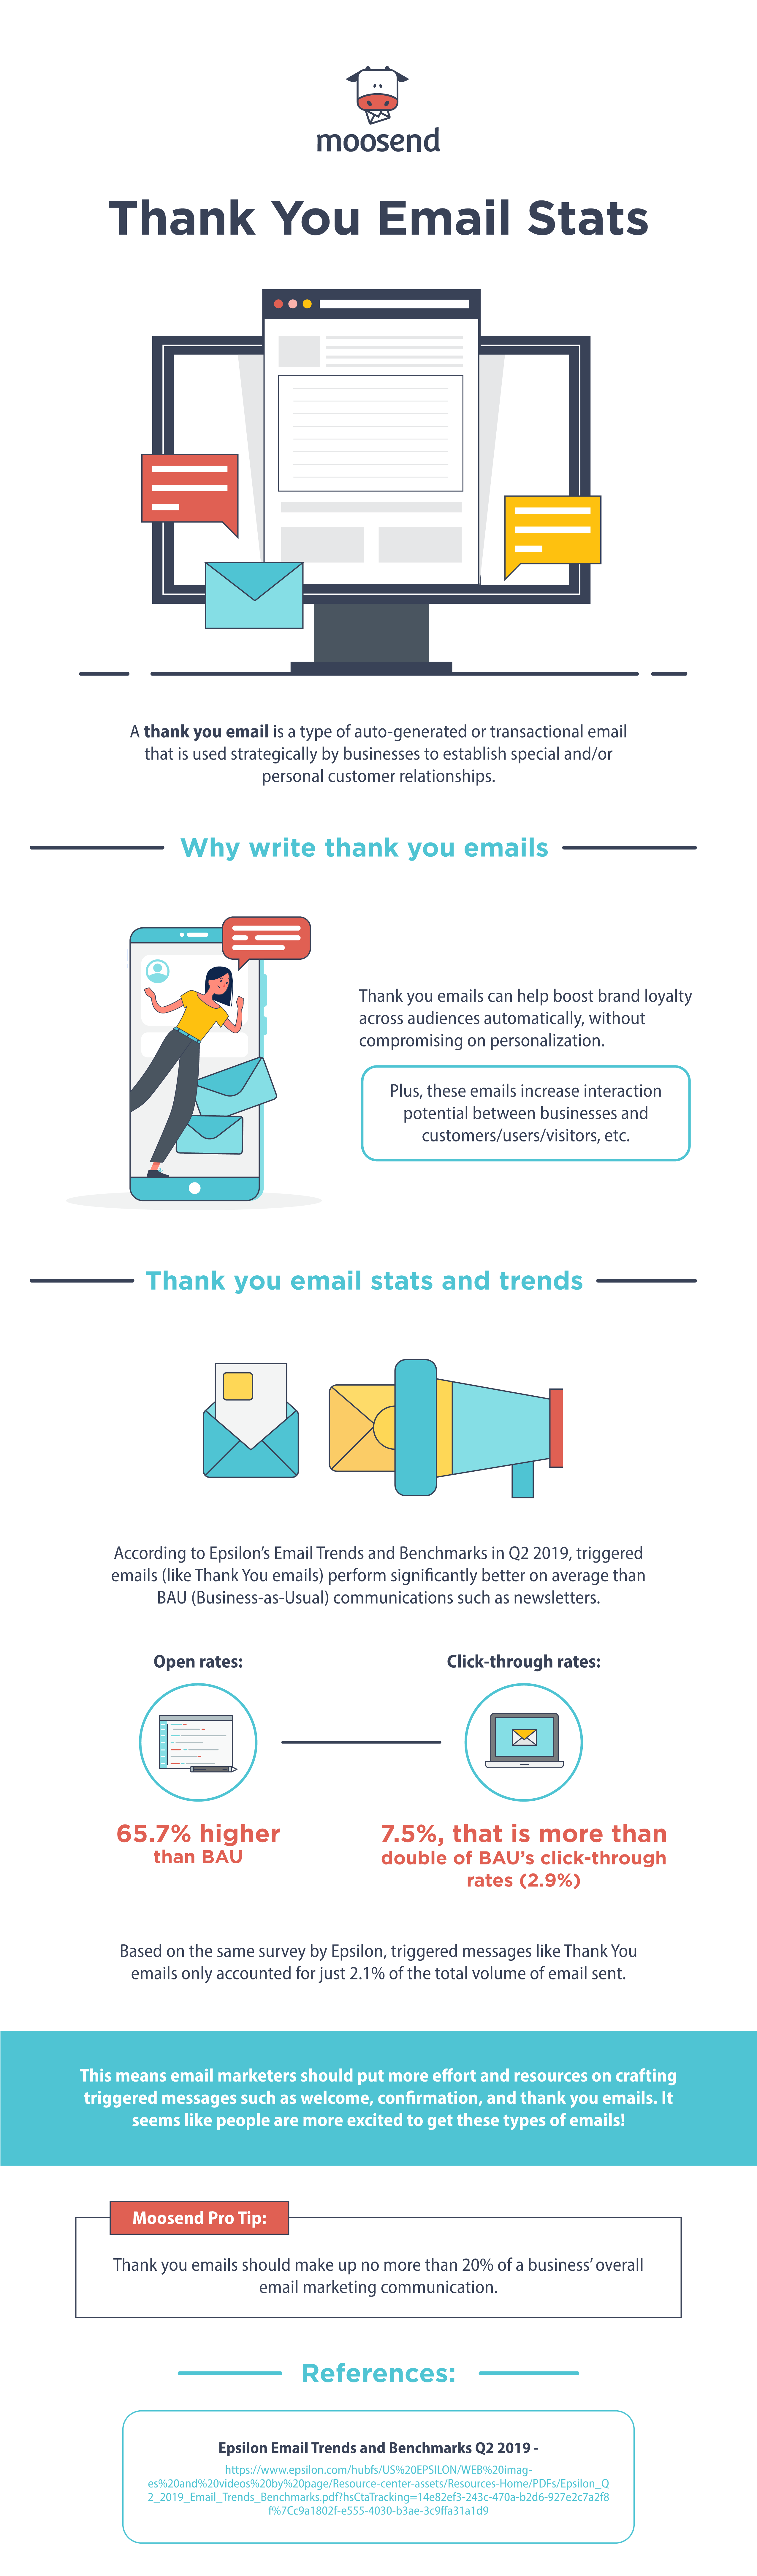 Automated thank you email stats and trends infographic